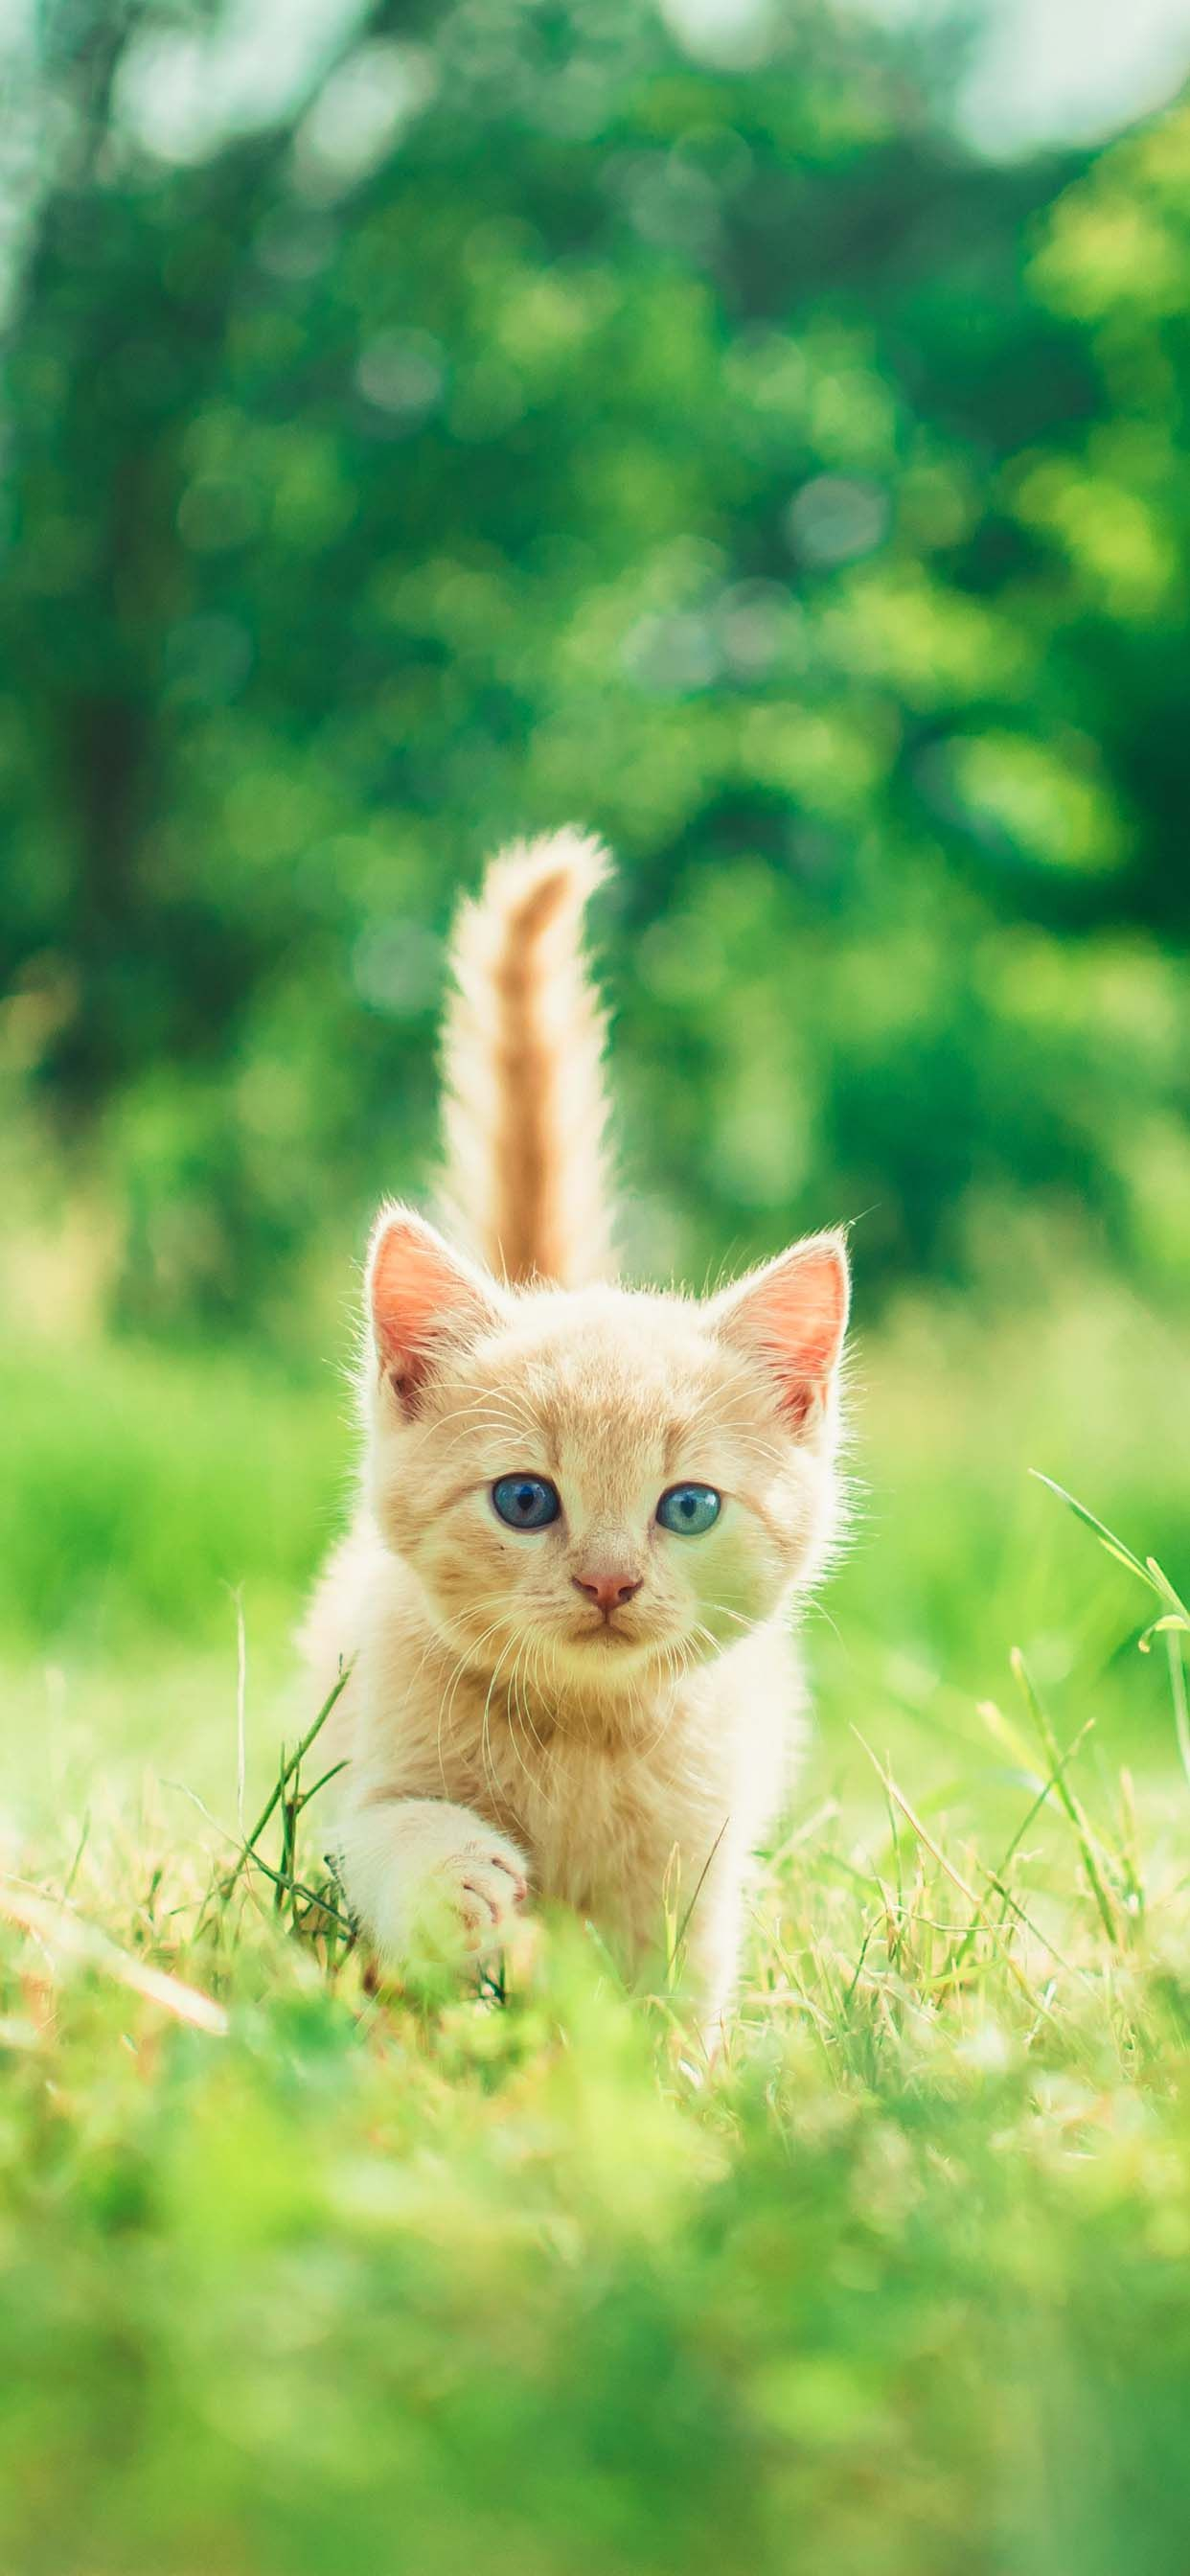 10 Cat Wallpapers For Iphone Xs Max Iphone Xs Iphone Xr I Like Cats Very Much Kittens Cutest Cute Cat Wallpaper Baby Cats